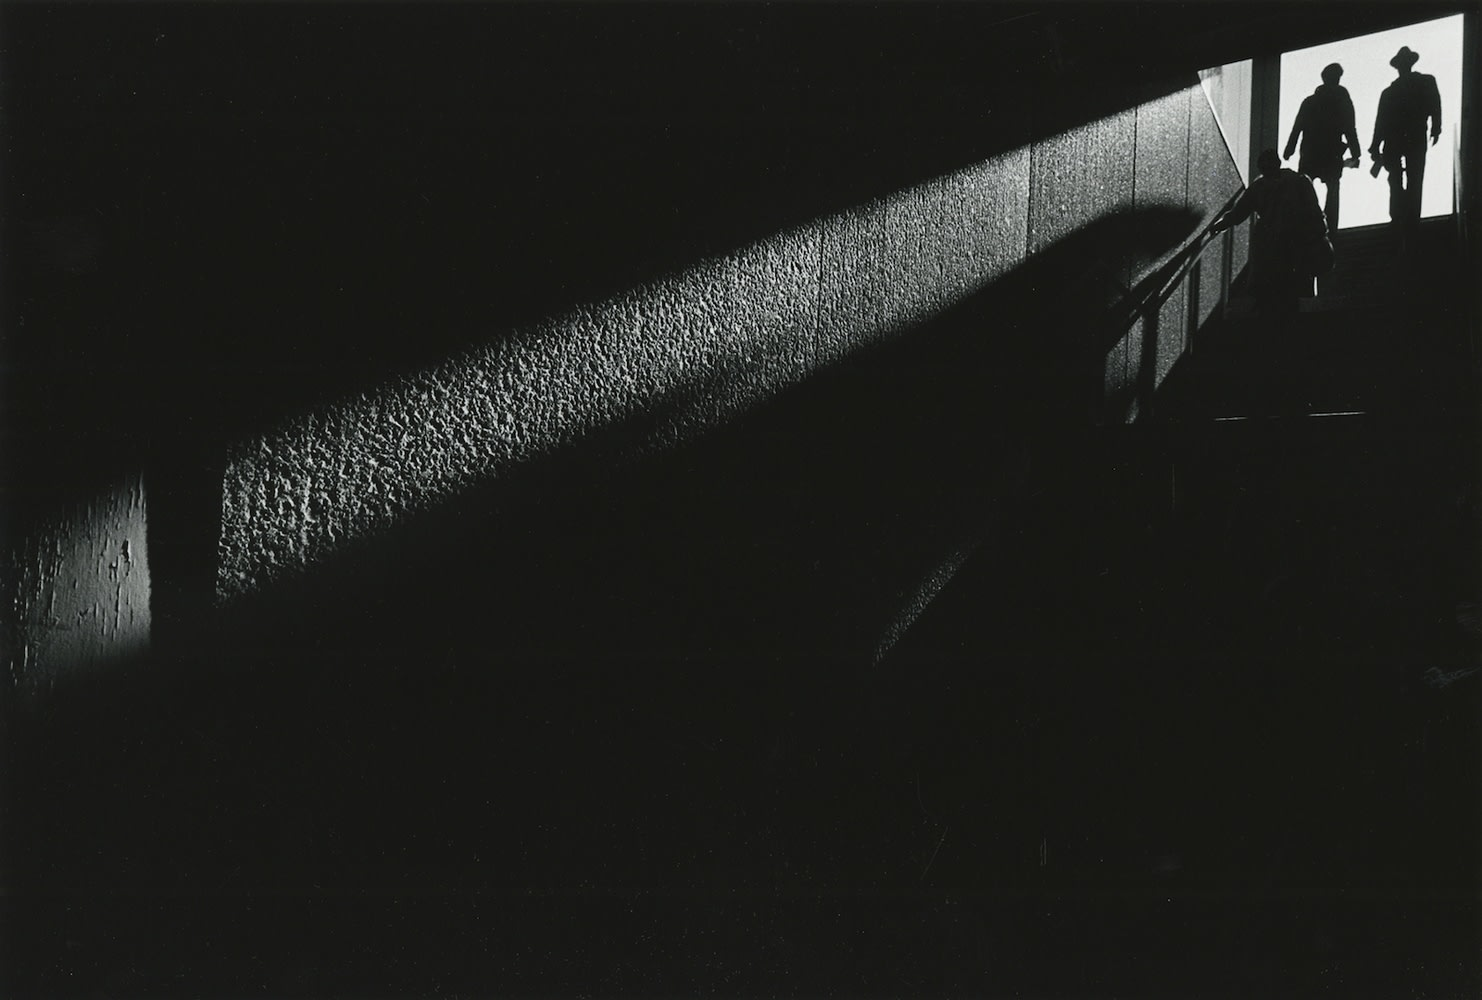 Ray K. Metzker, City Whispers, 1981